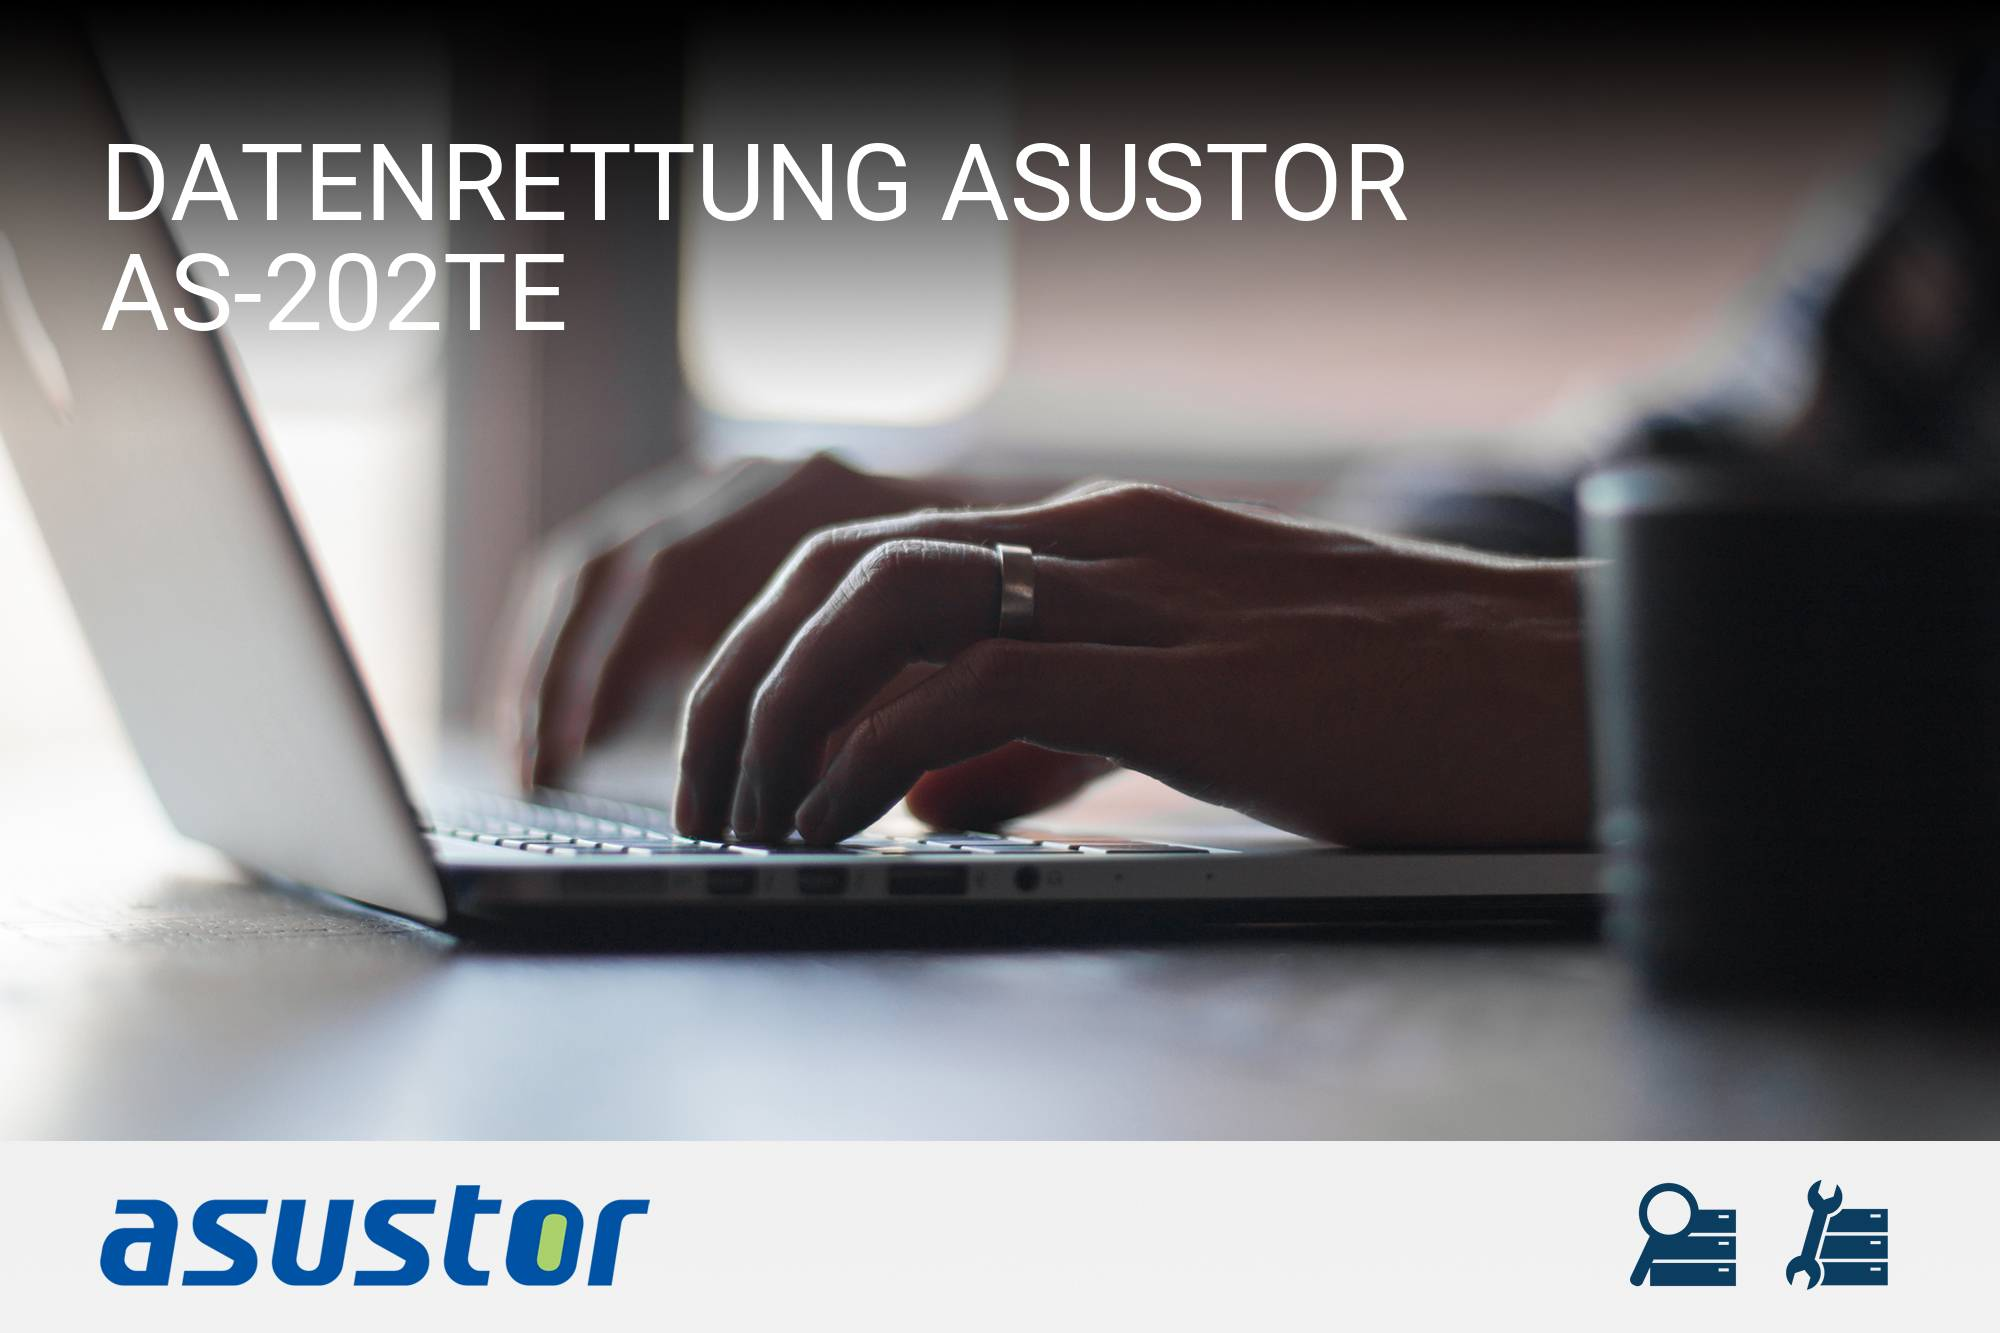 Asustor AS-202TE